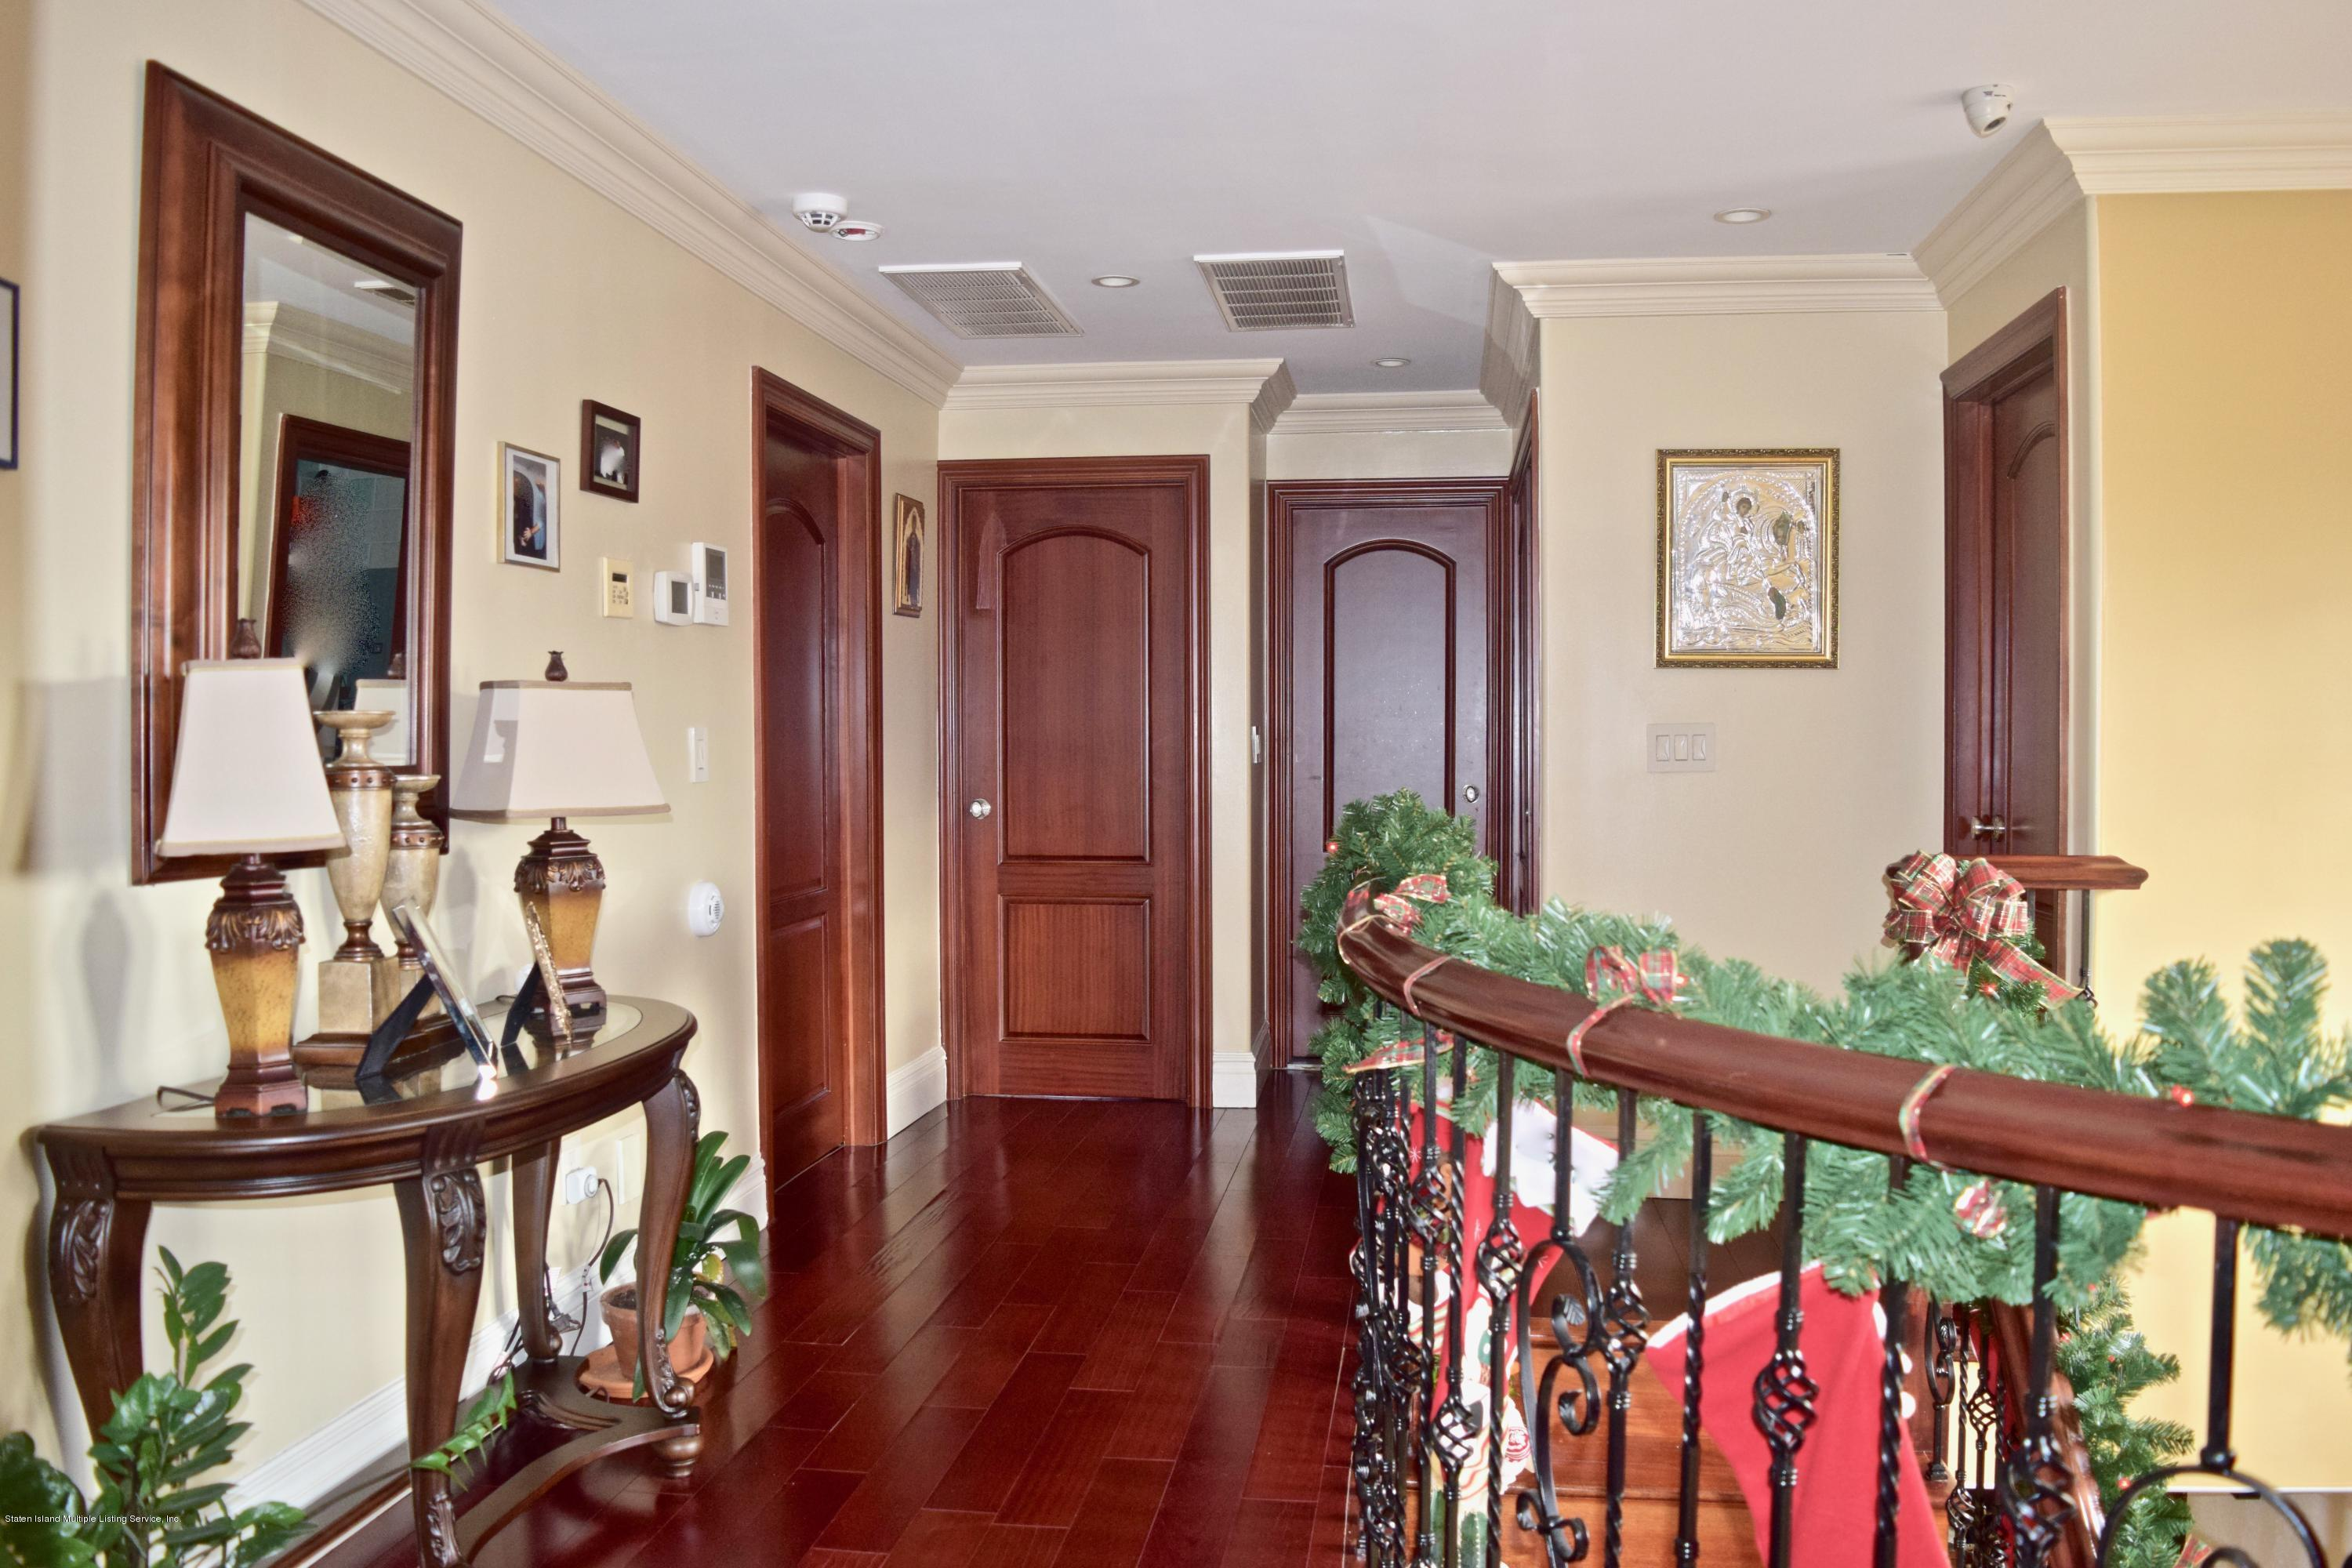 Single Family - Detached 107 Northern Boulevard  Staten Island, NY 10301, MLS-1124986-10